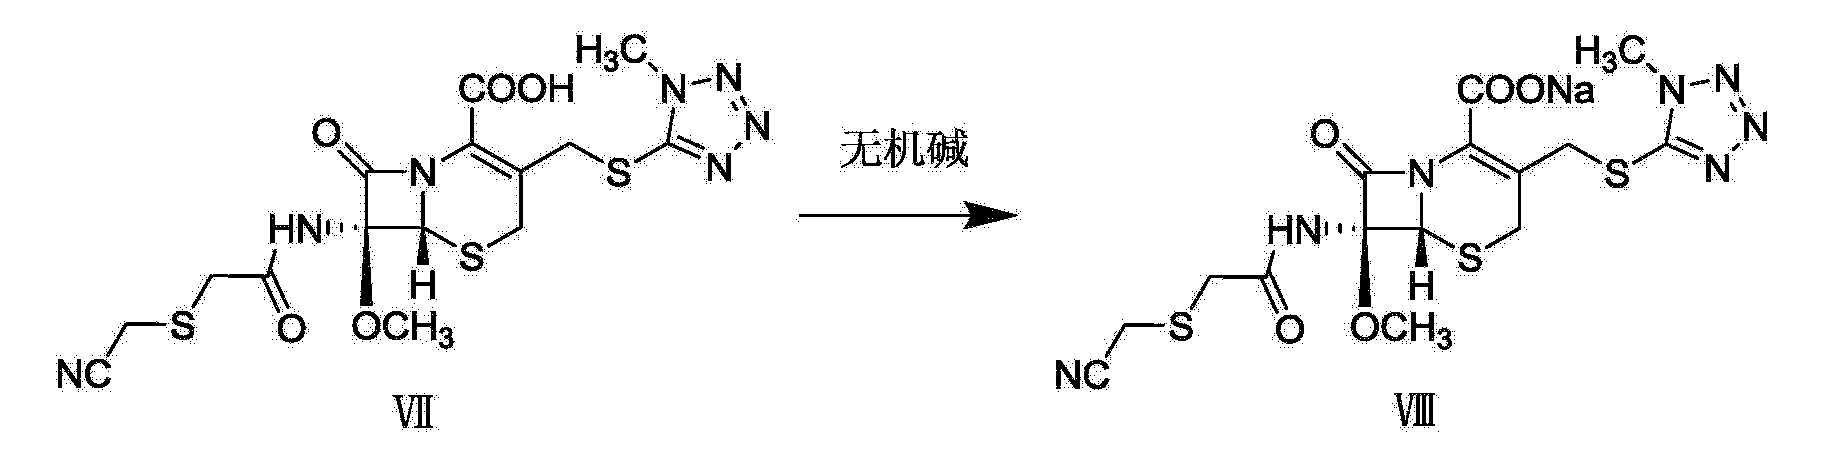 synthesis of n n dimethylbenzylamine Appearance: colorless to pale yellow clear liquid (est) assay: 9500 to 10000  food chemicals codex listed: no specific gravity: 090000 2500 °c refractive .